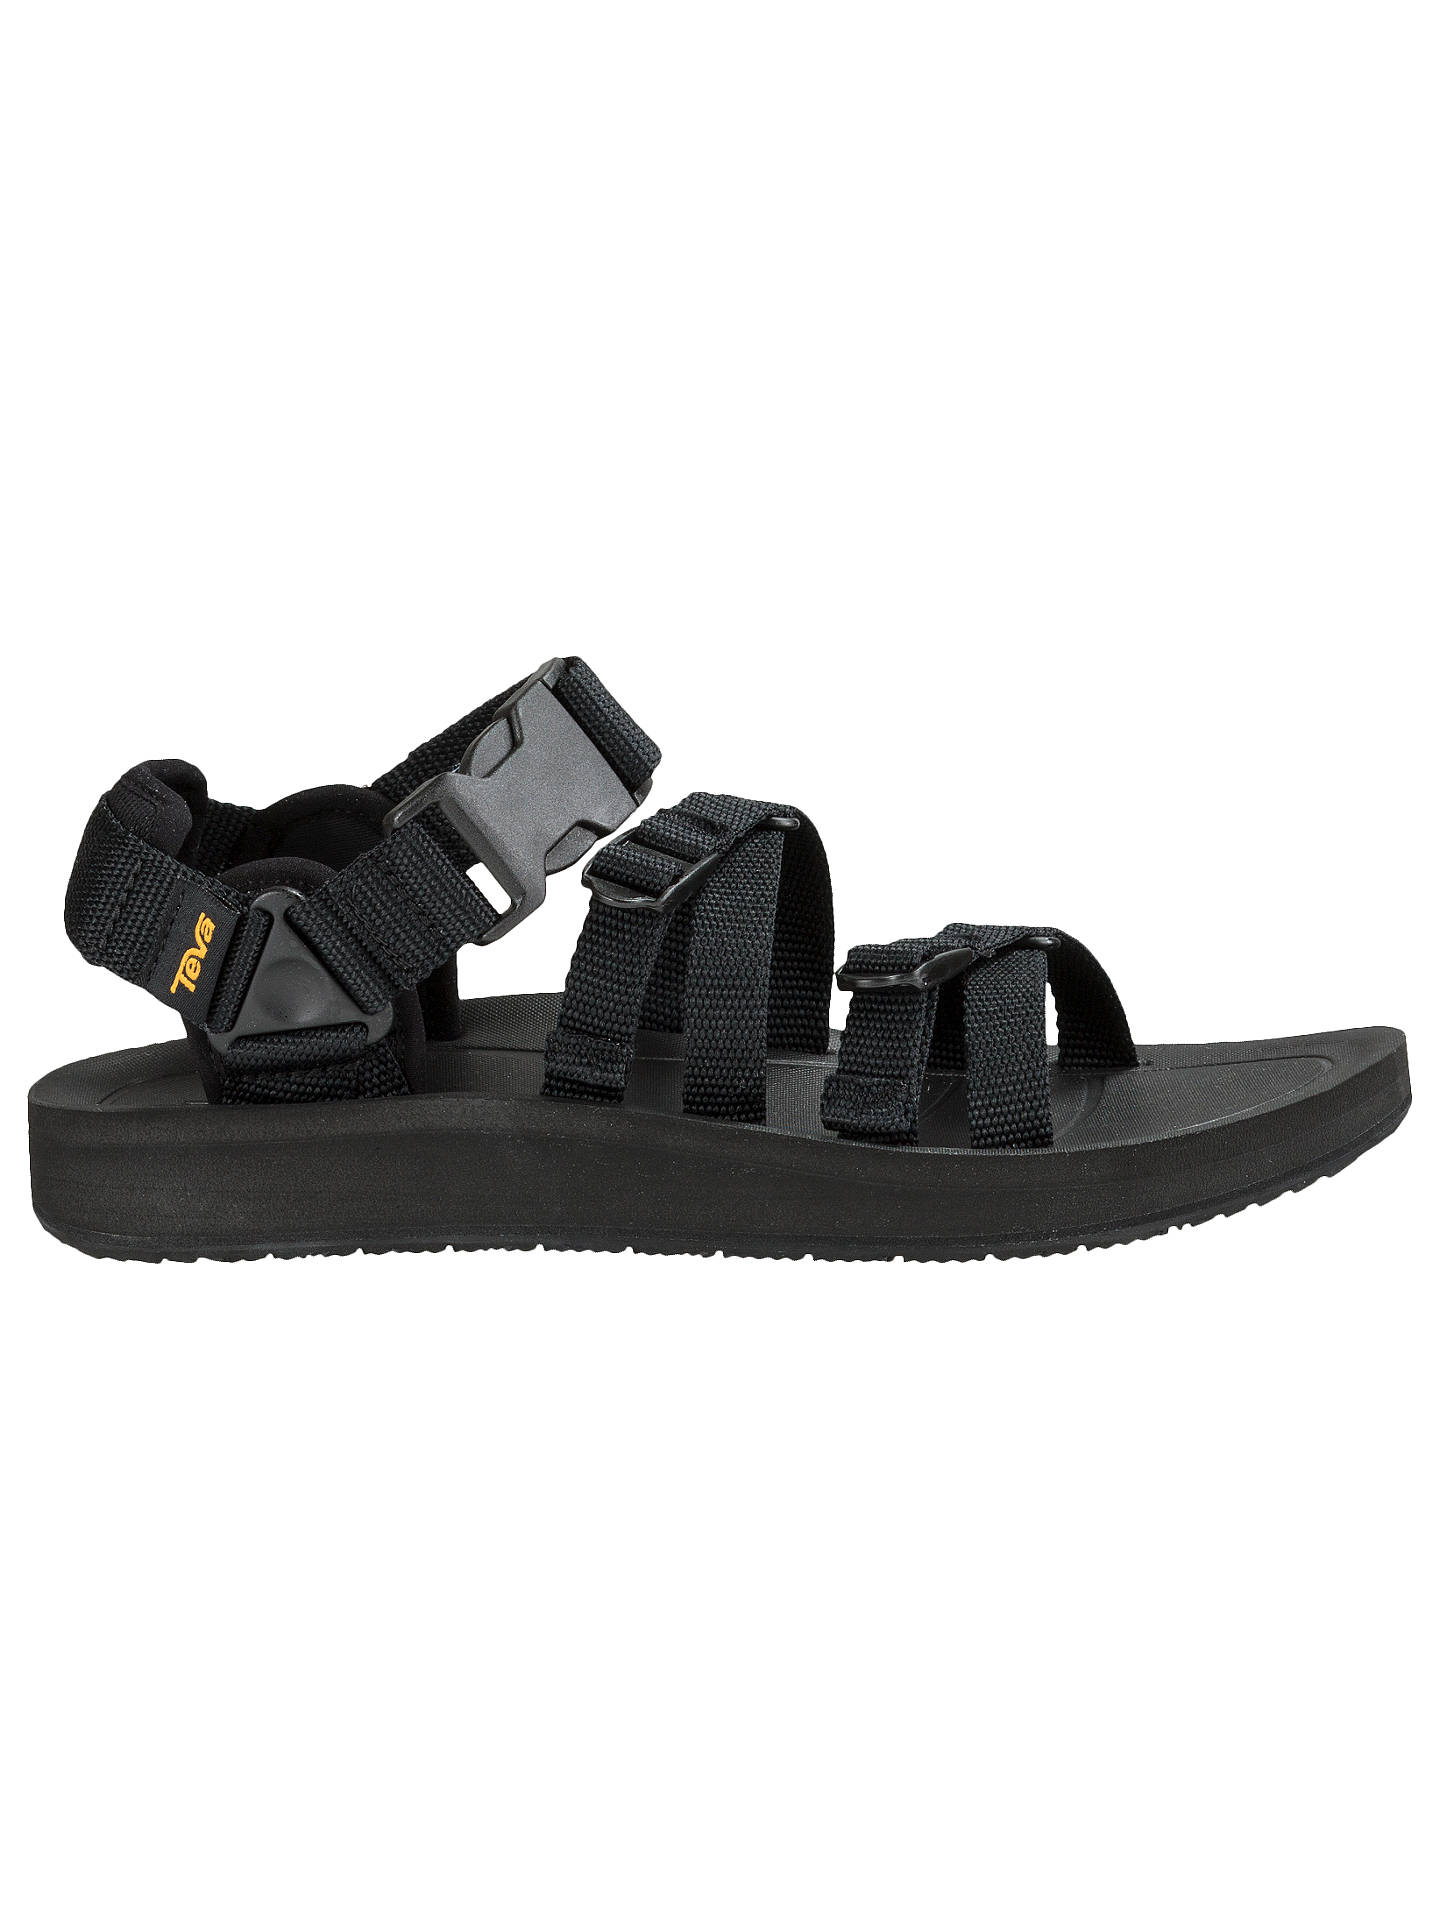 13147f2b5f89 Buy Teva Alp Premier Men s Sandals